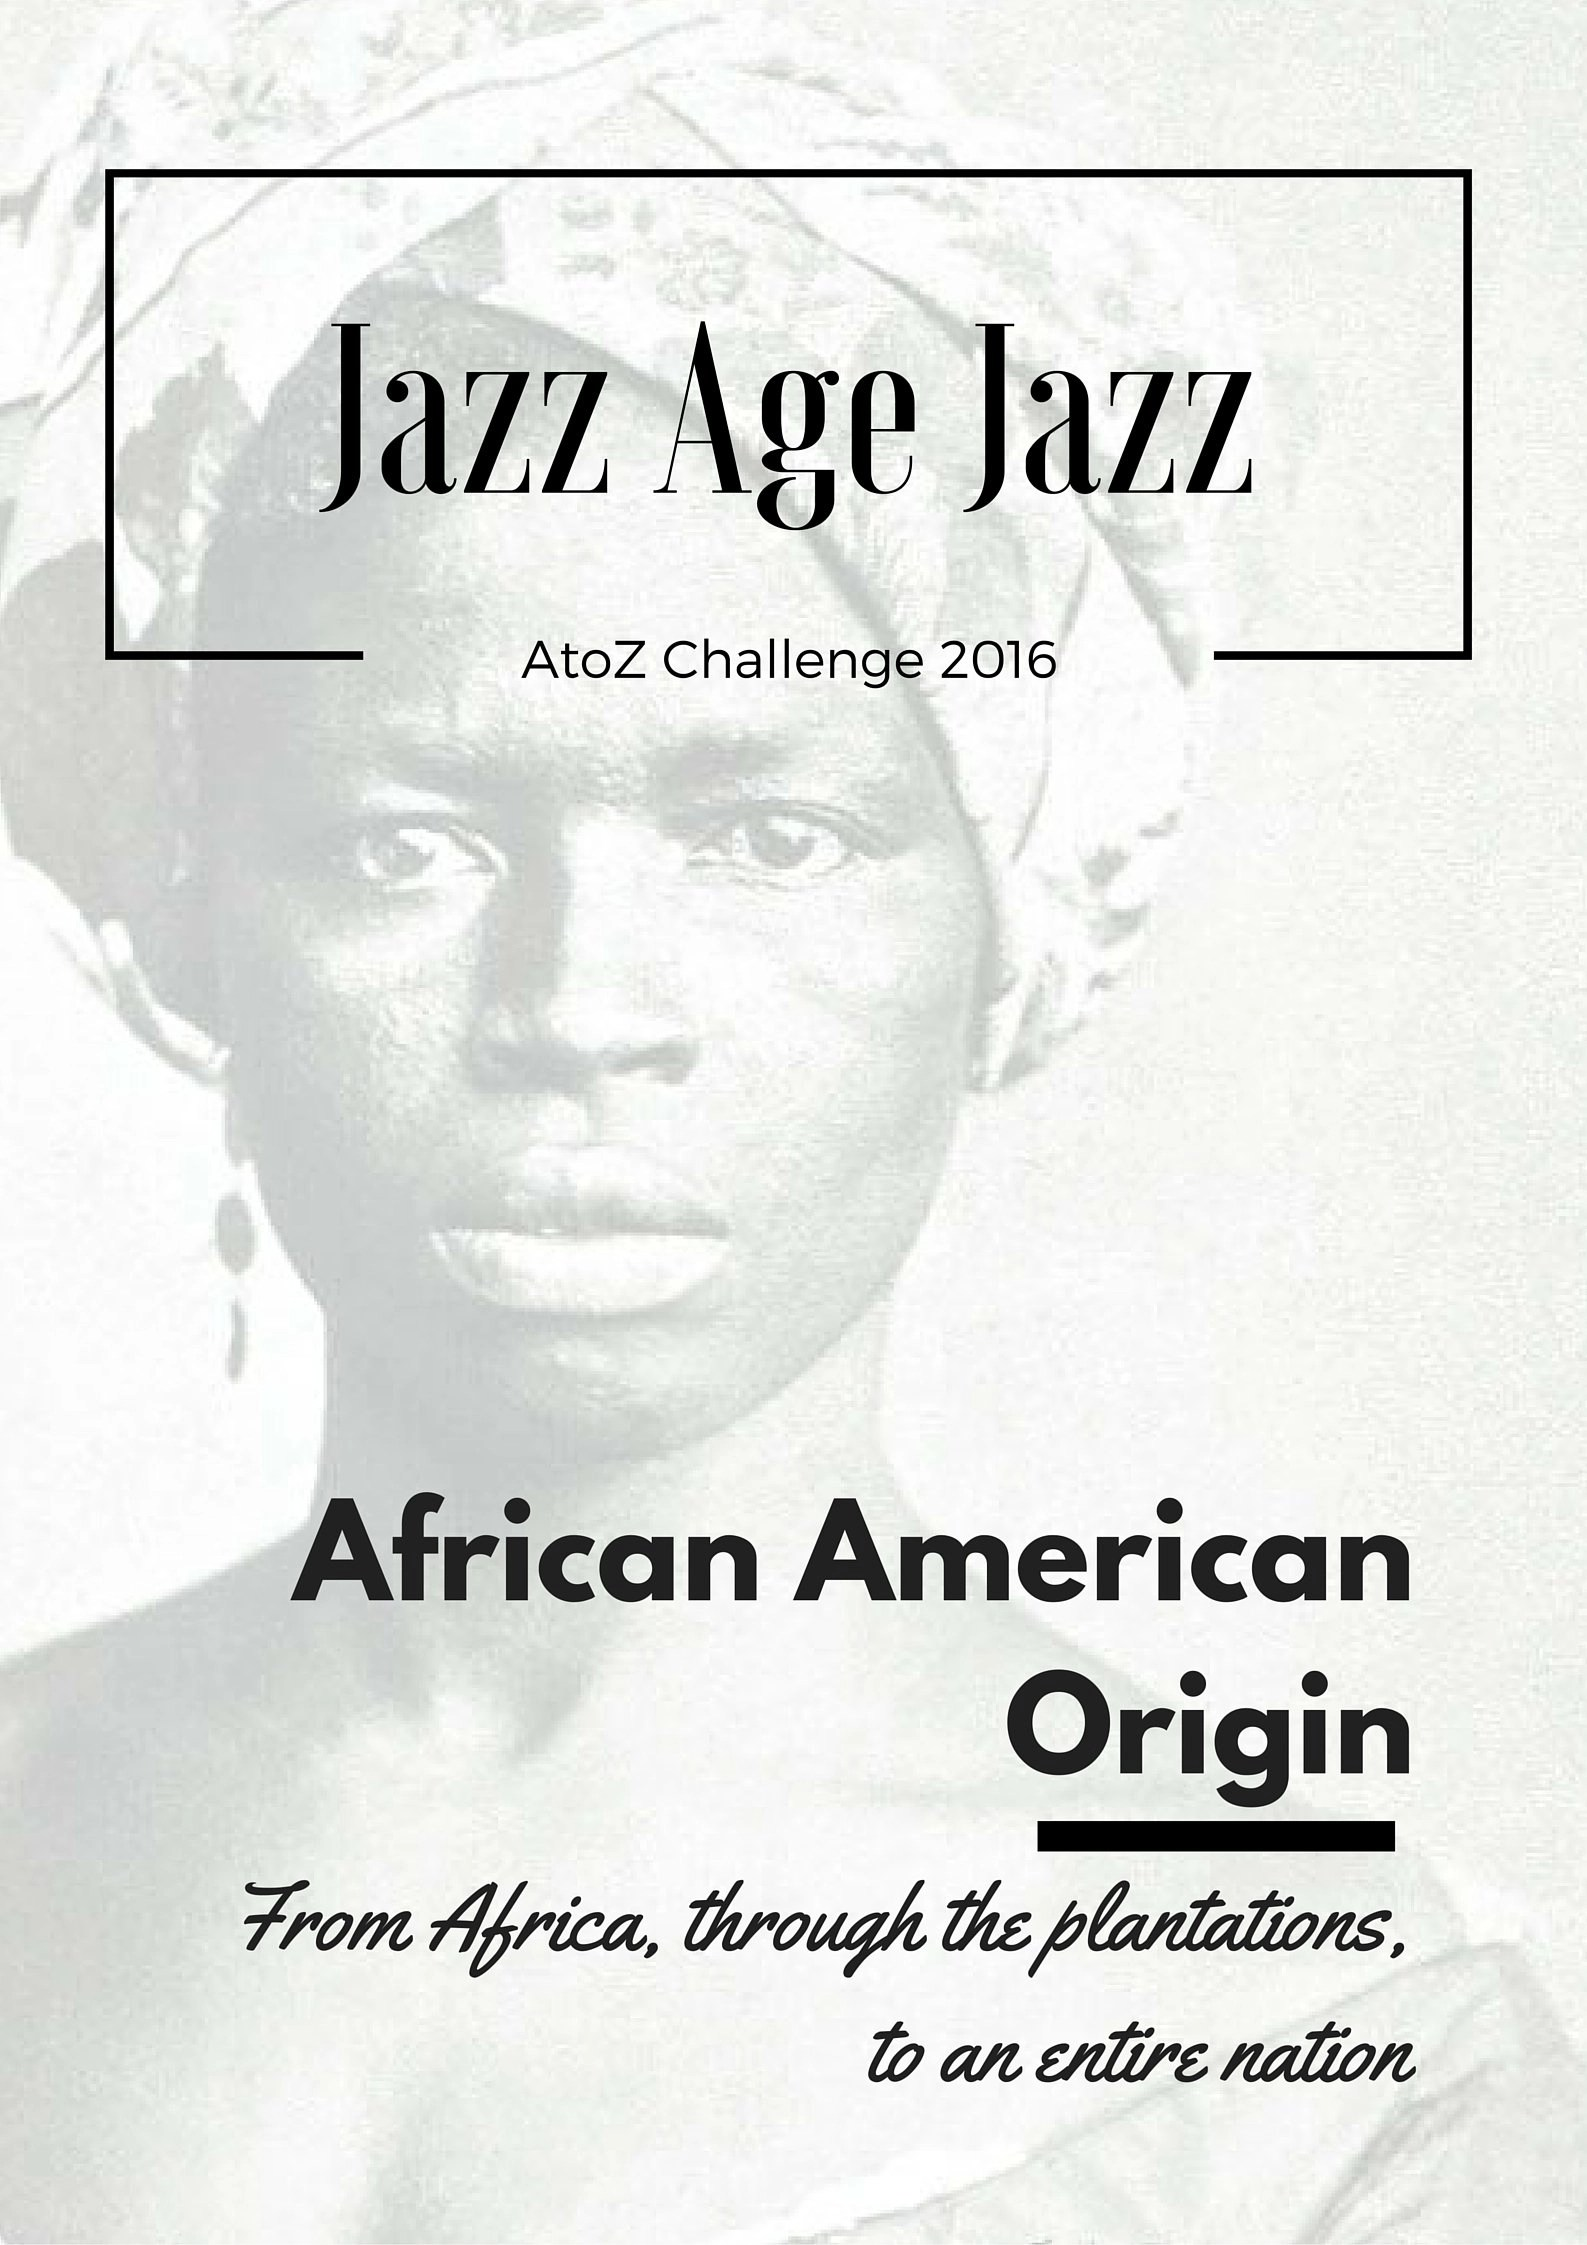 Jazz Age Jazz - Afro American Origins: from Africa, to the plantations, to an entire nation